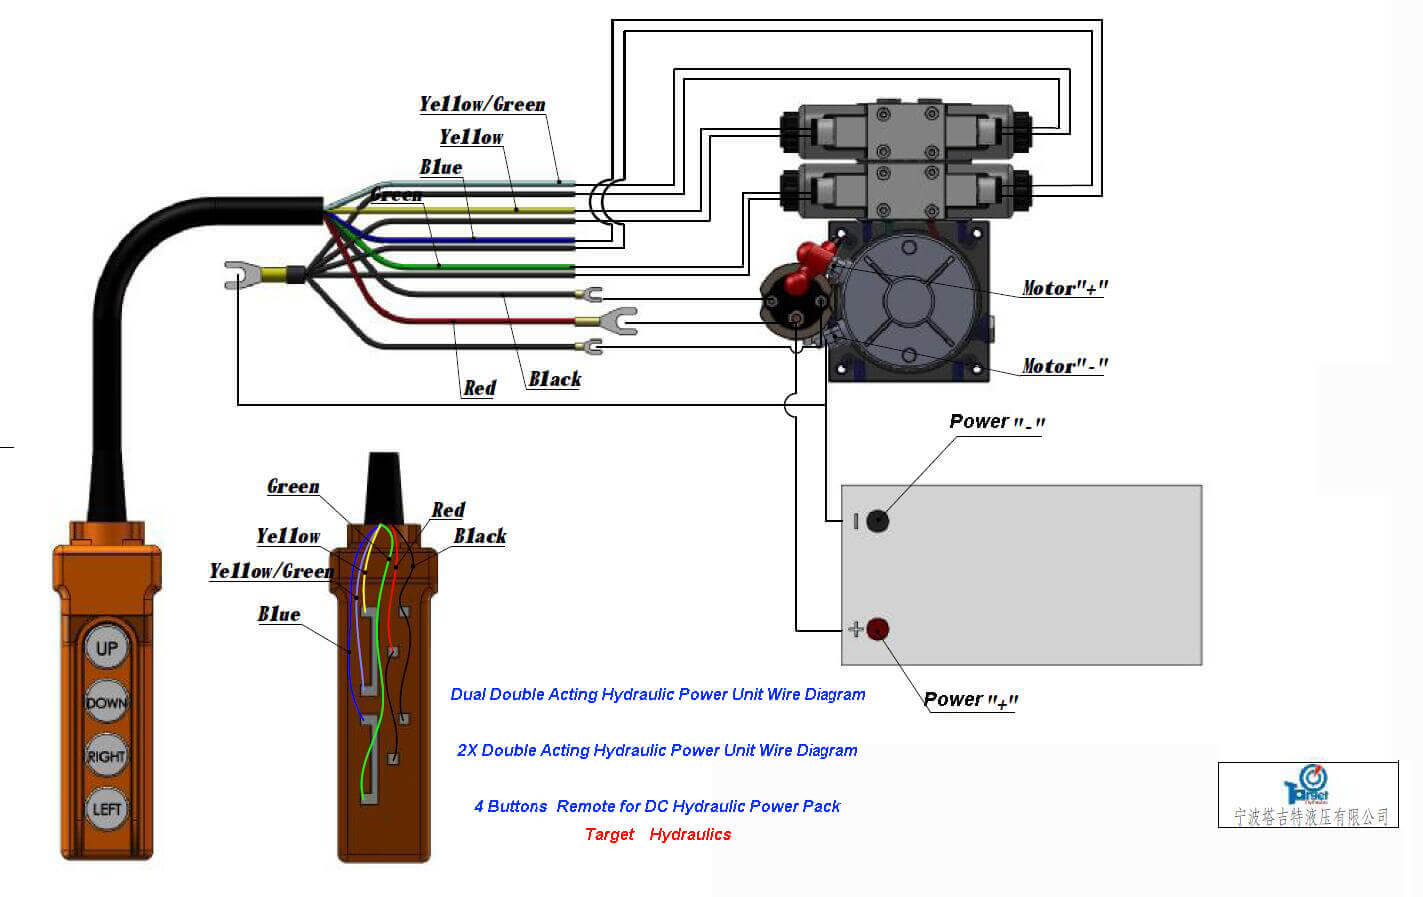 dual double acting hydraulic cylinder Power Units Wiring Diagram drawing how to wire hydraulic power pack,power unit diagram design kti hydraulic pump wiring diagram at panicattacktreatment.co